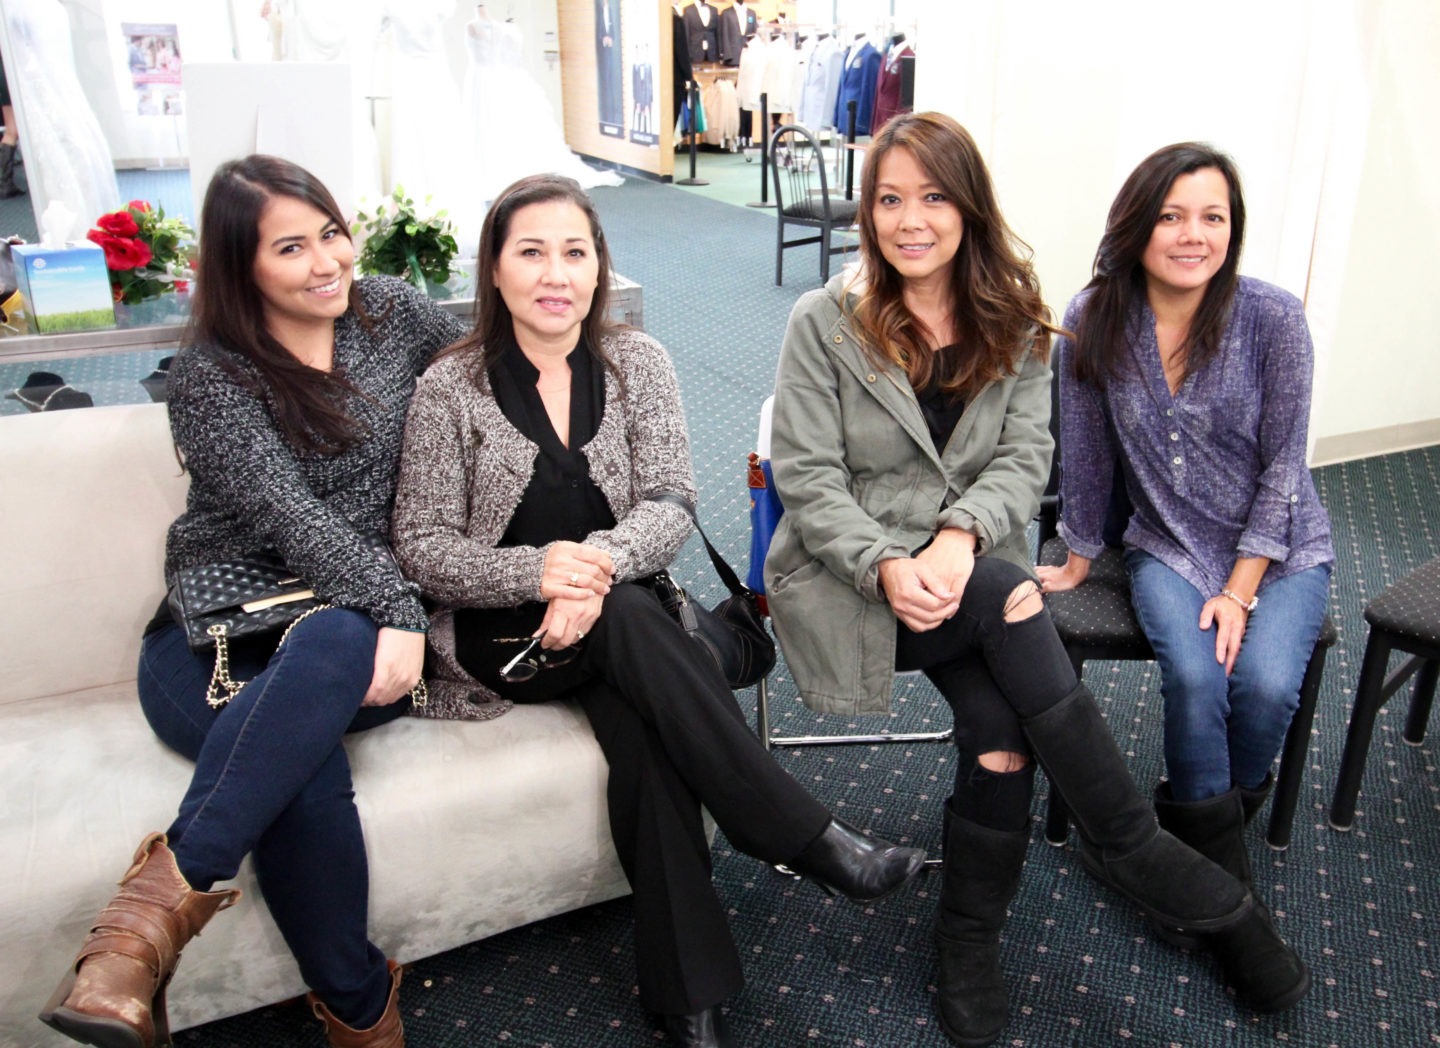 Bridesmaid Dress Shopping - Chelsea de Castro